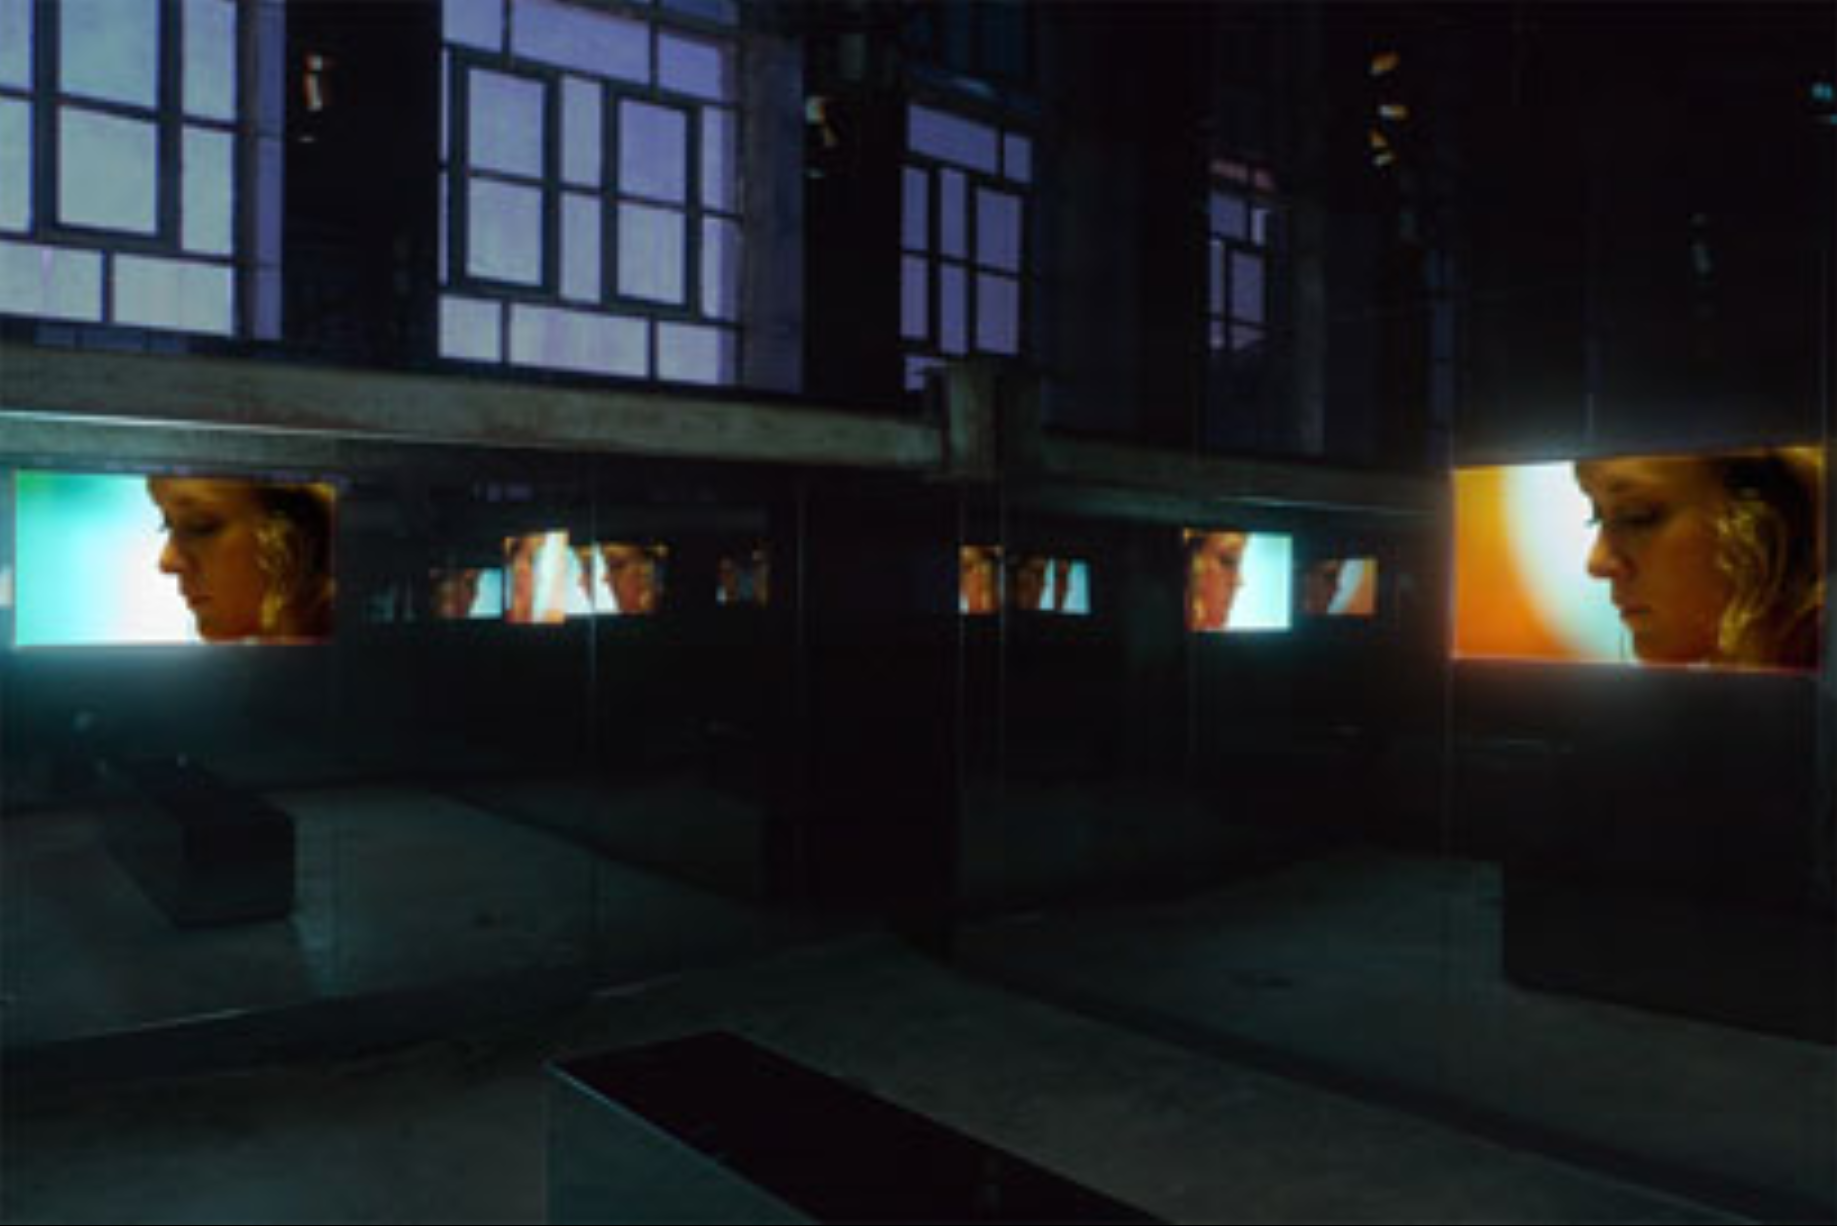 A photo of a dark gallery with multiple screens showing the same image of a white woman with blonde hair.